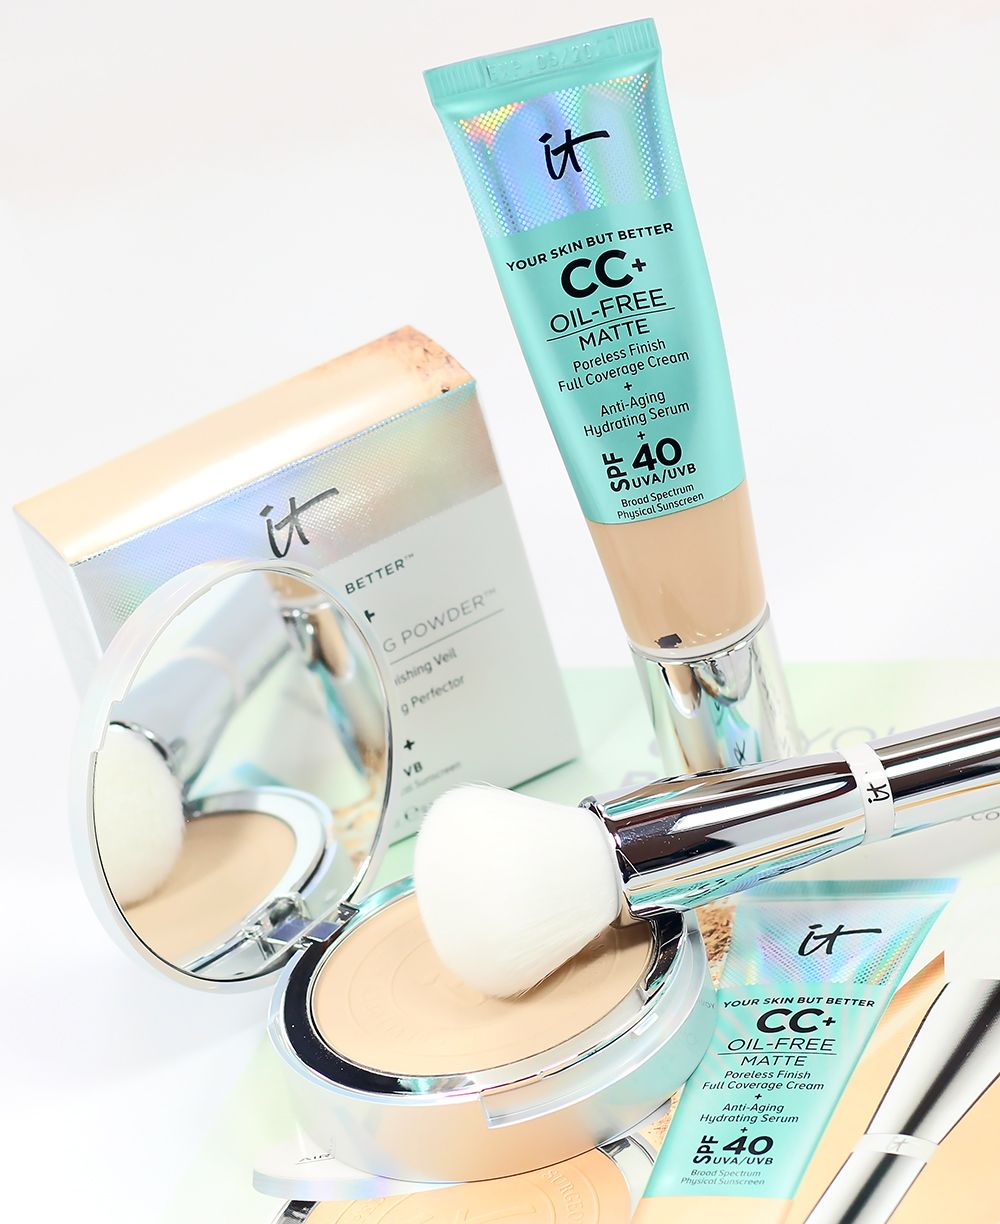 Does it cosmetics cc oil free matte foundation work on